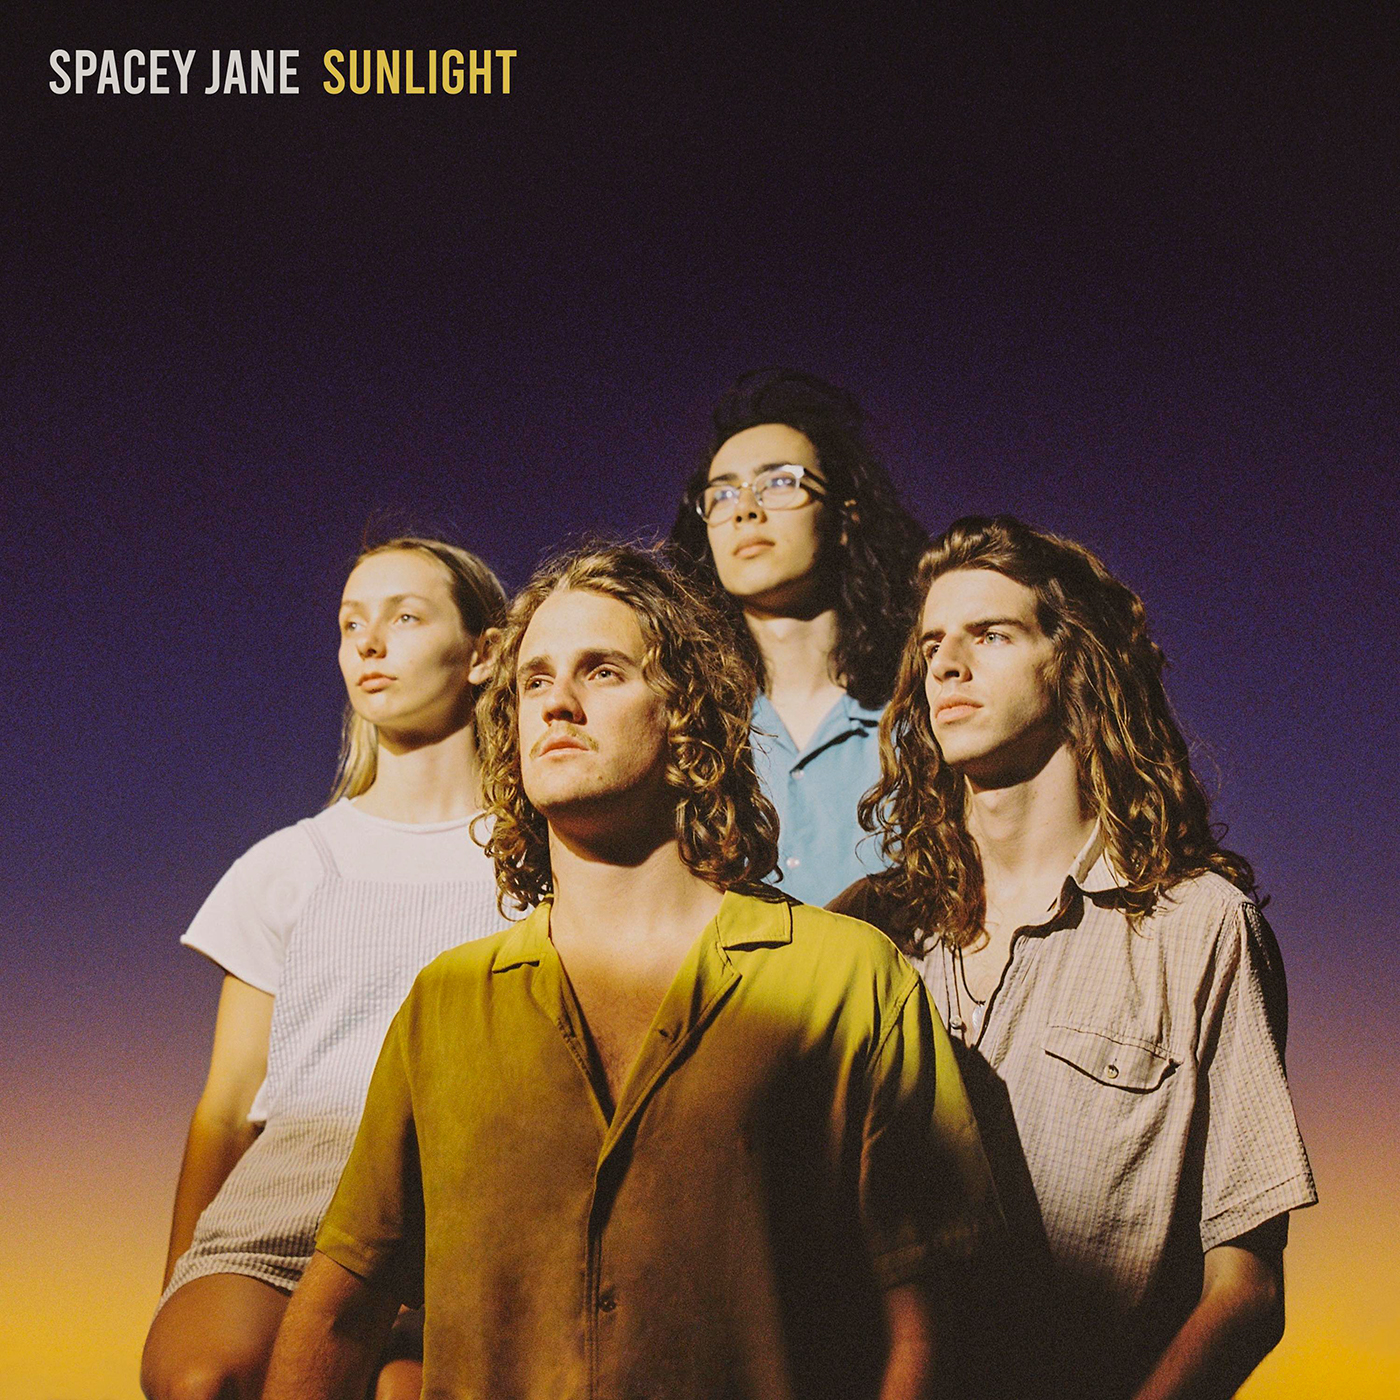 Spacey Jane Sunlight album cover art